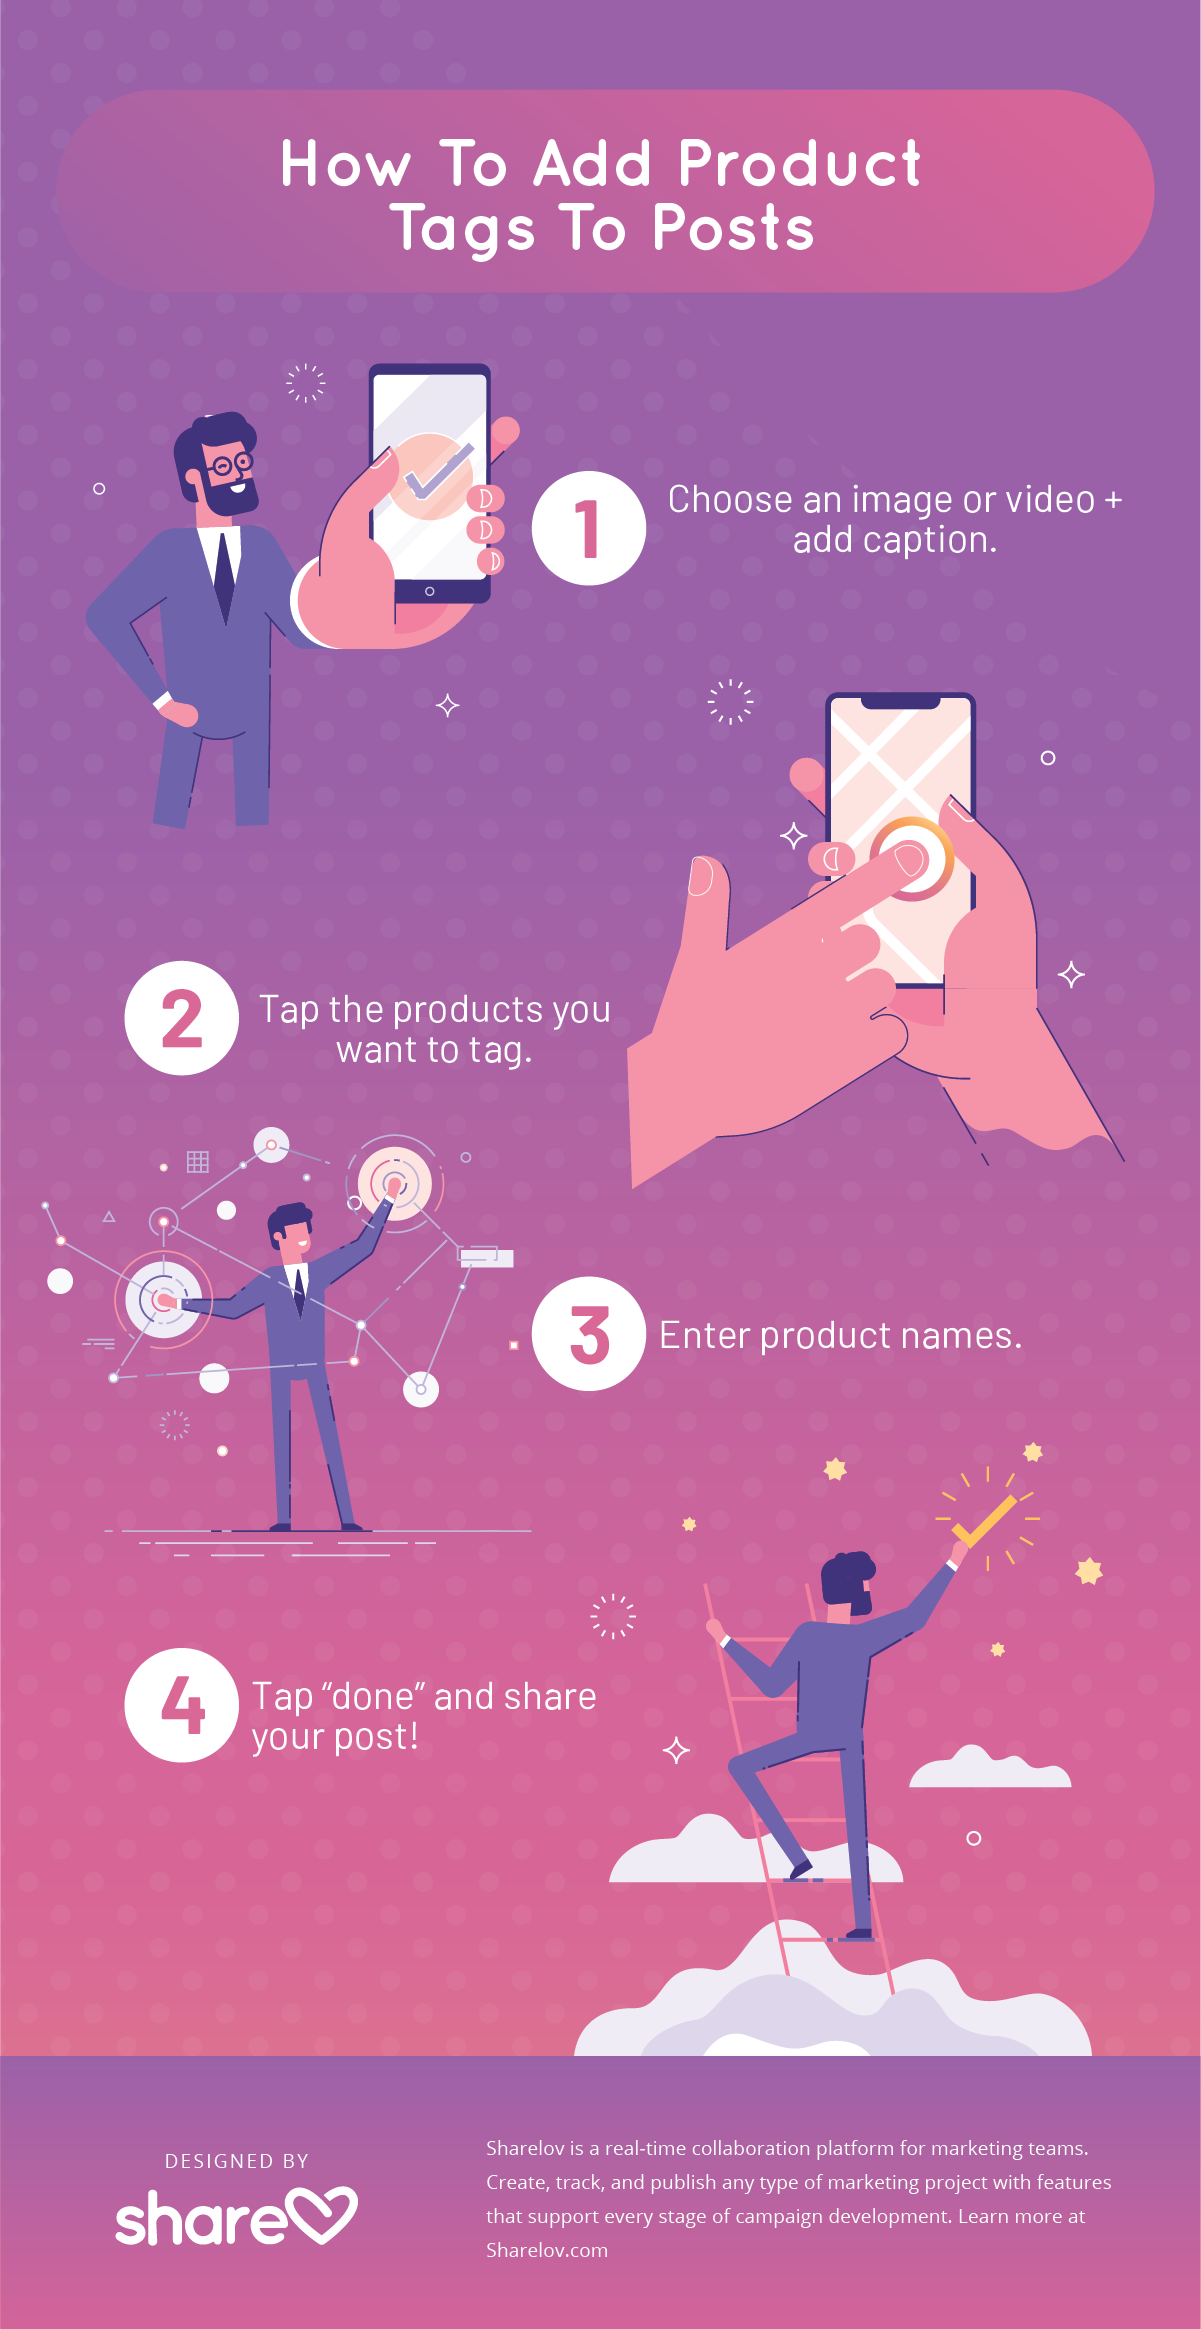 How To Add Product Tags To Posts infographic